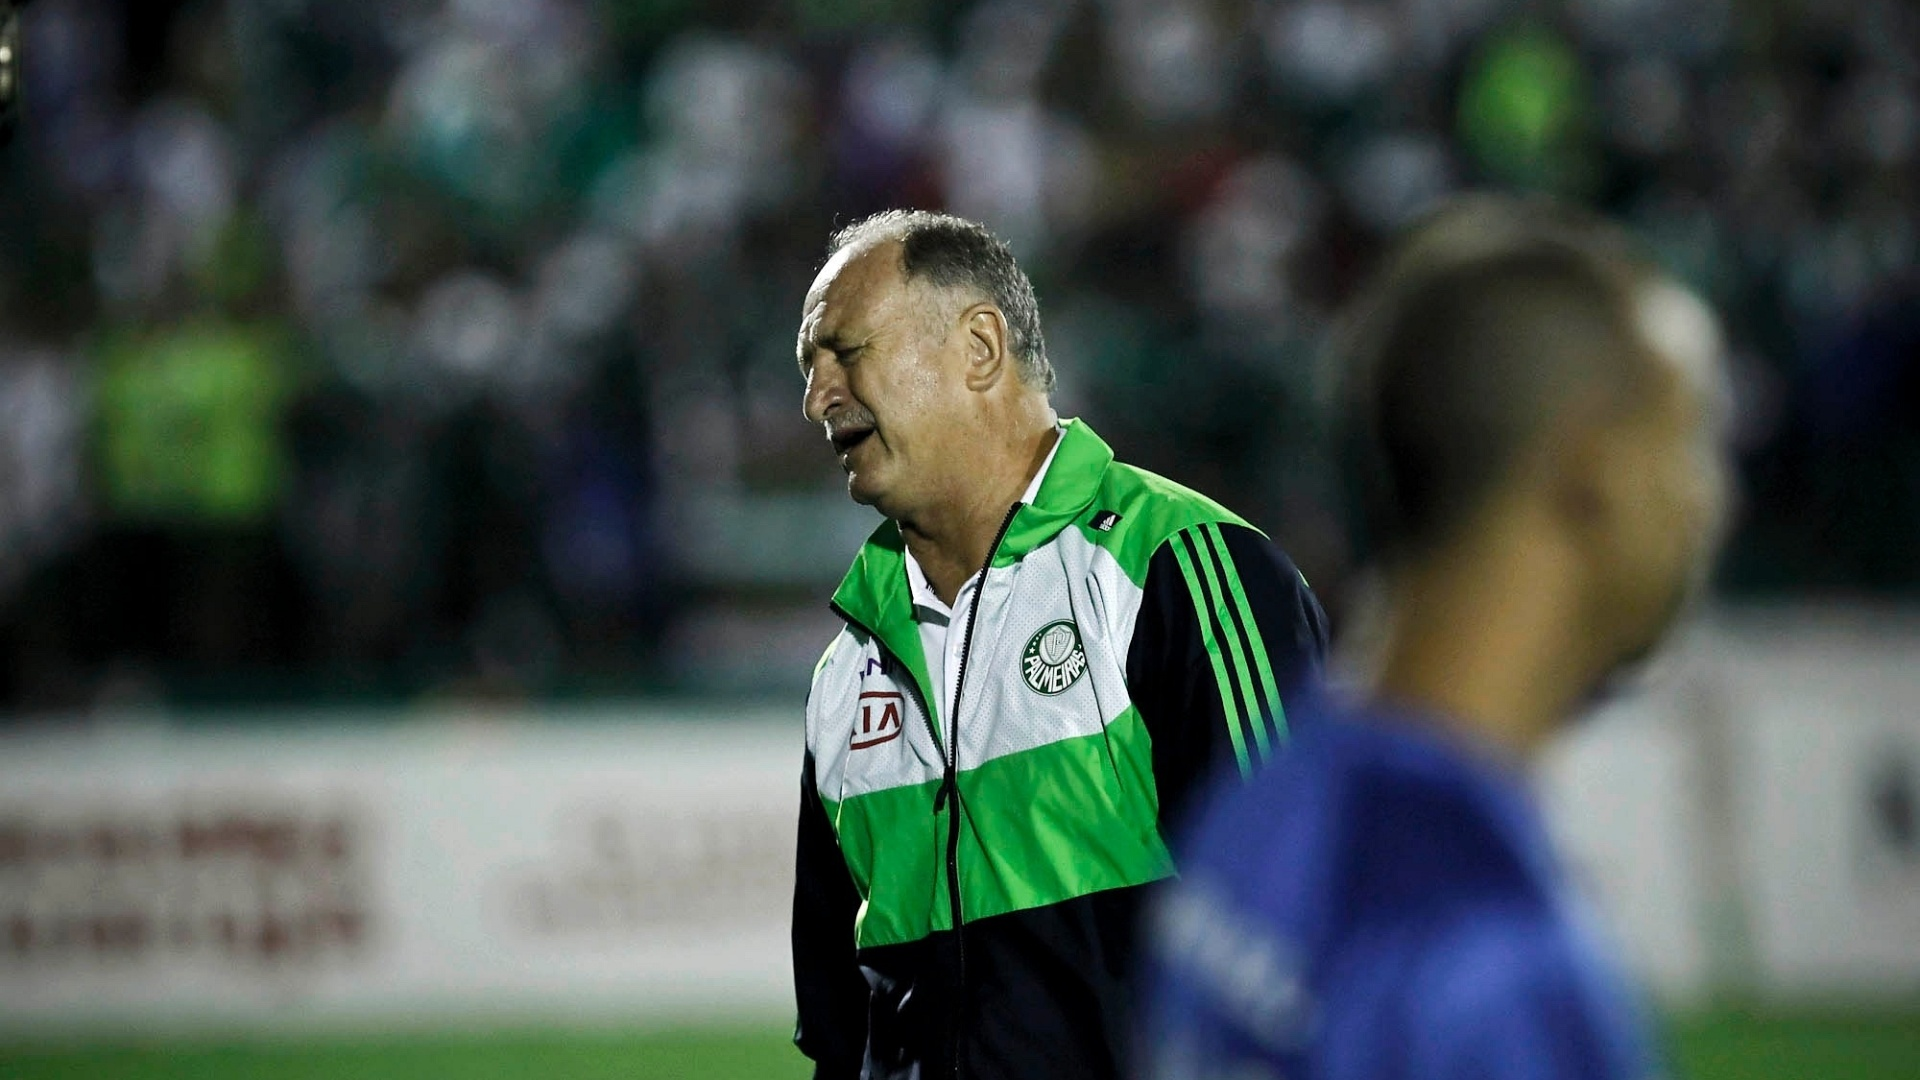 Luiz Felipe Scolari lamenta jogada do Palmeiras durante derrota para o Guarani